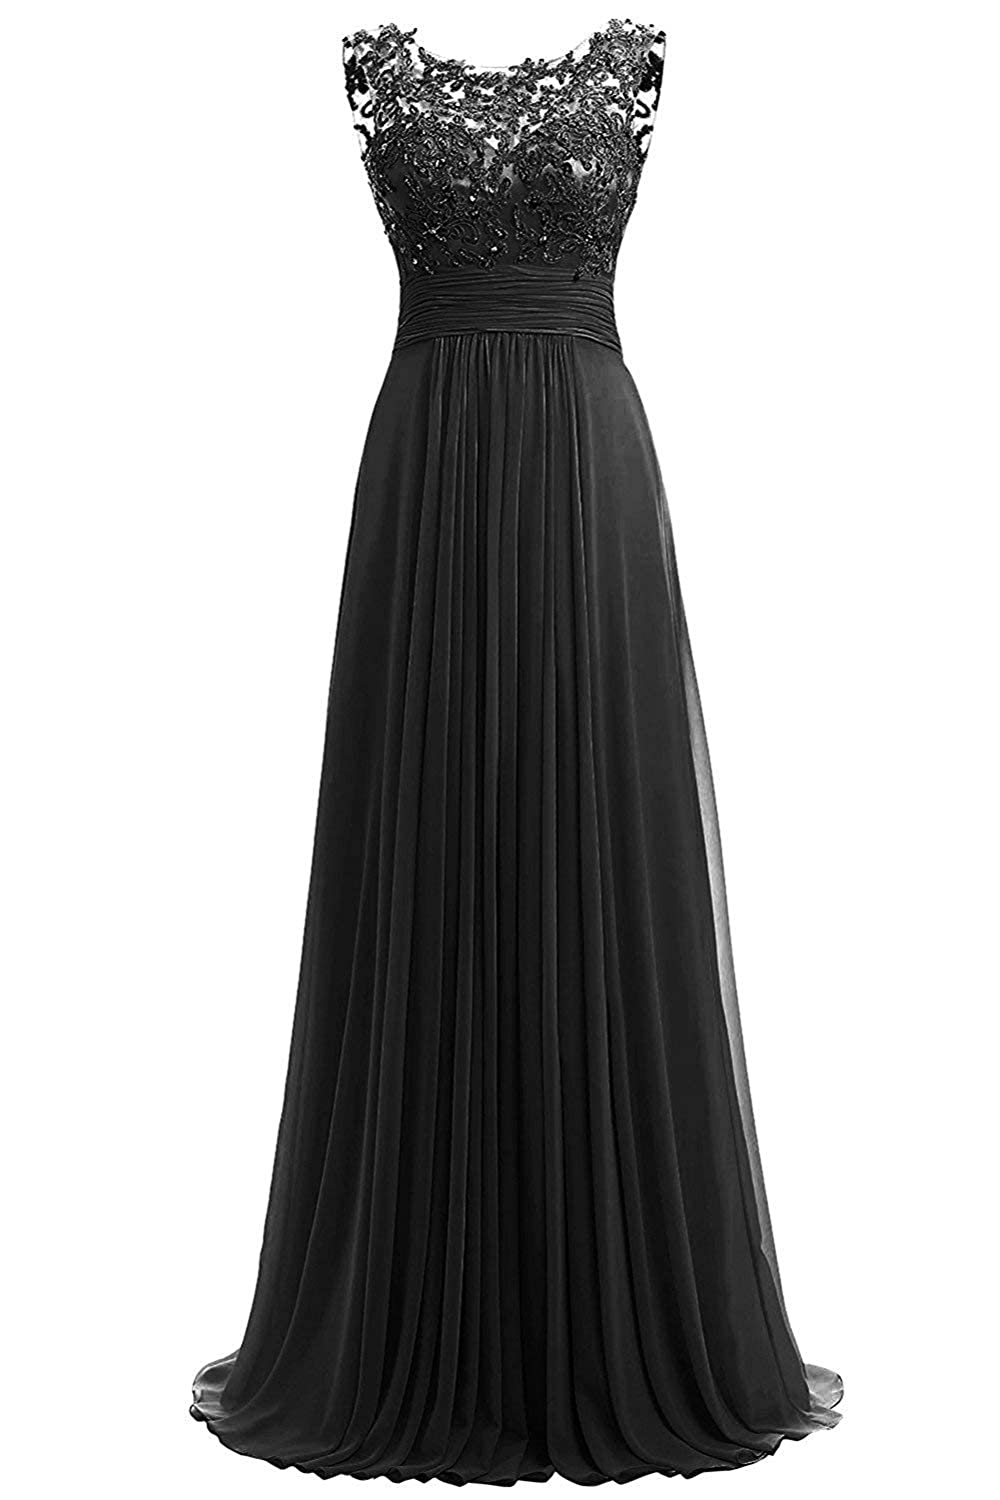 Promlink Womens Beaded Chiffon Long Dresses Gown Wedding Guest At